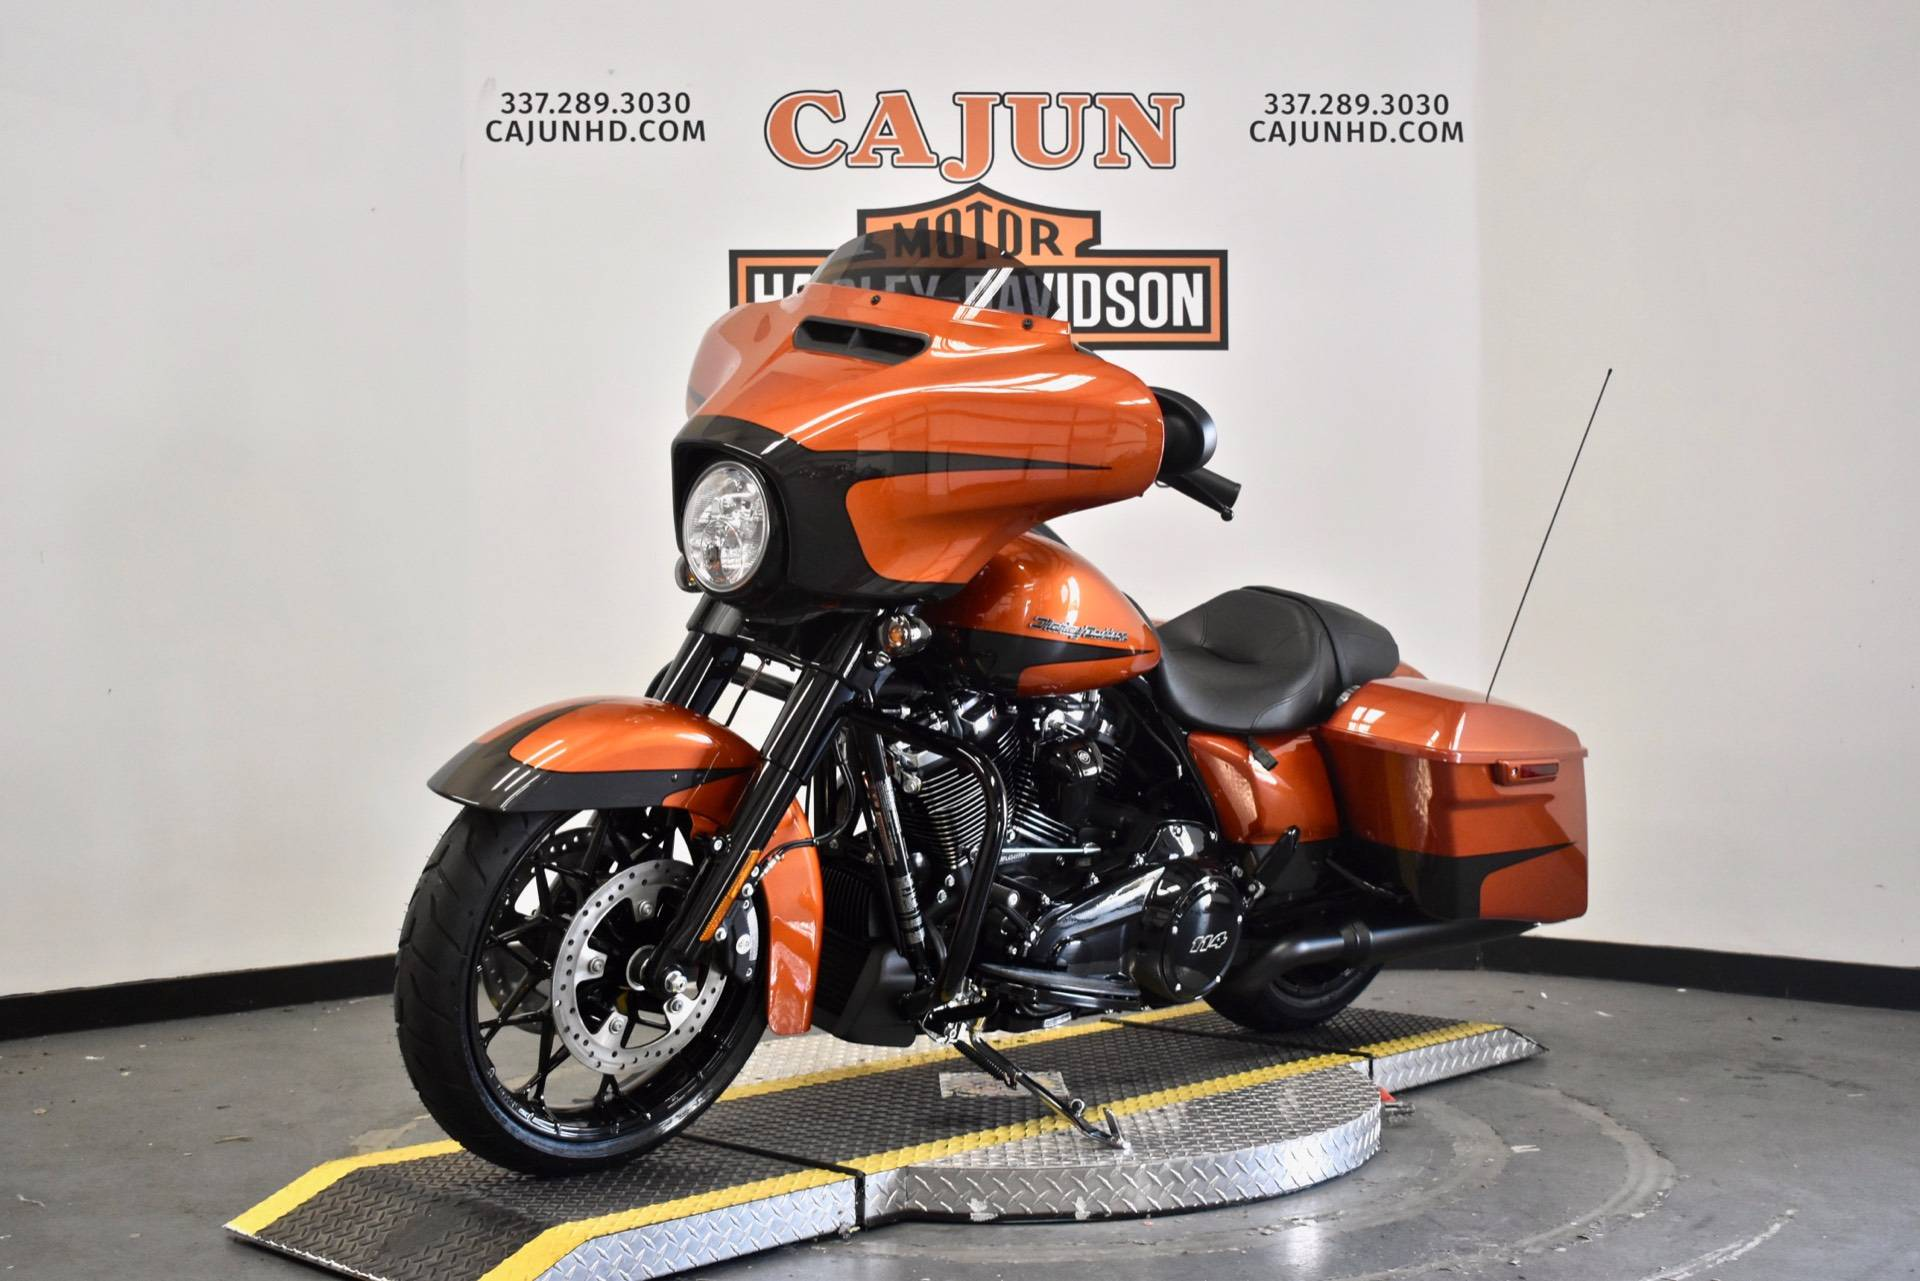 2020 street glide special - Photo 3